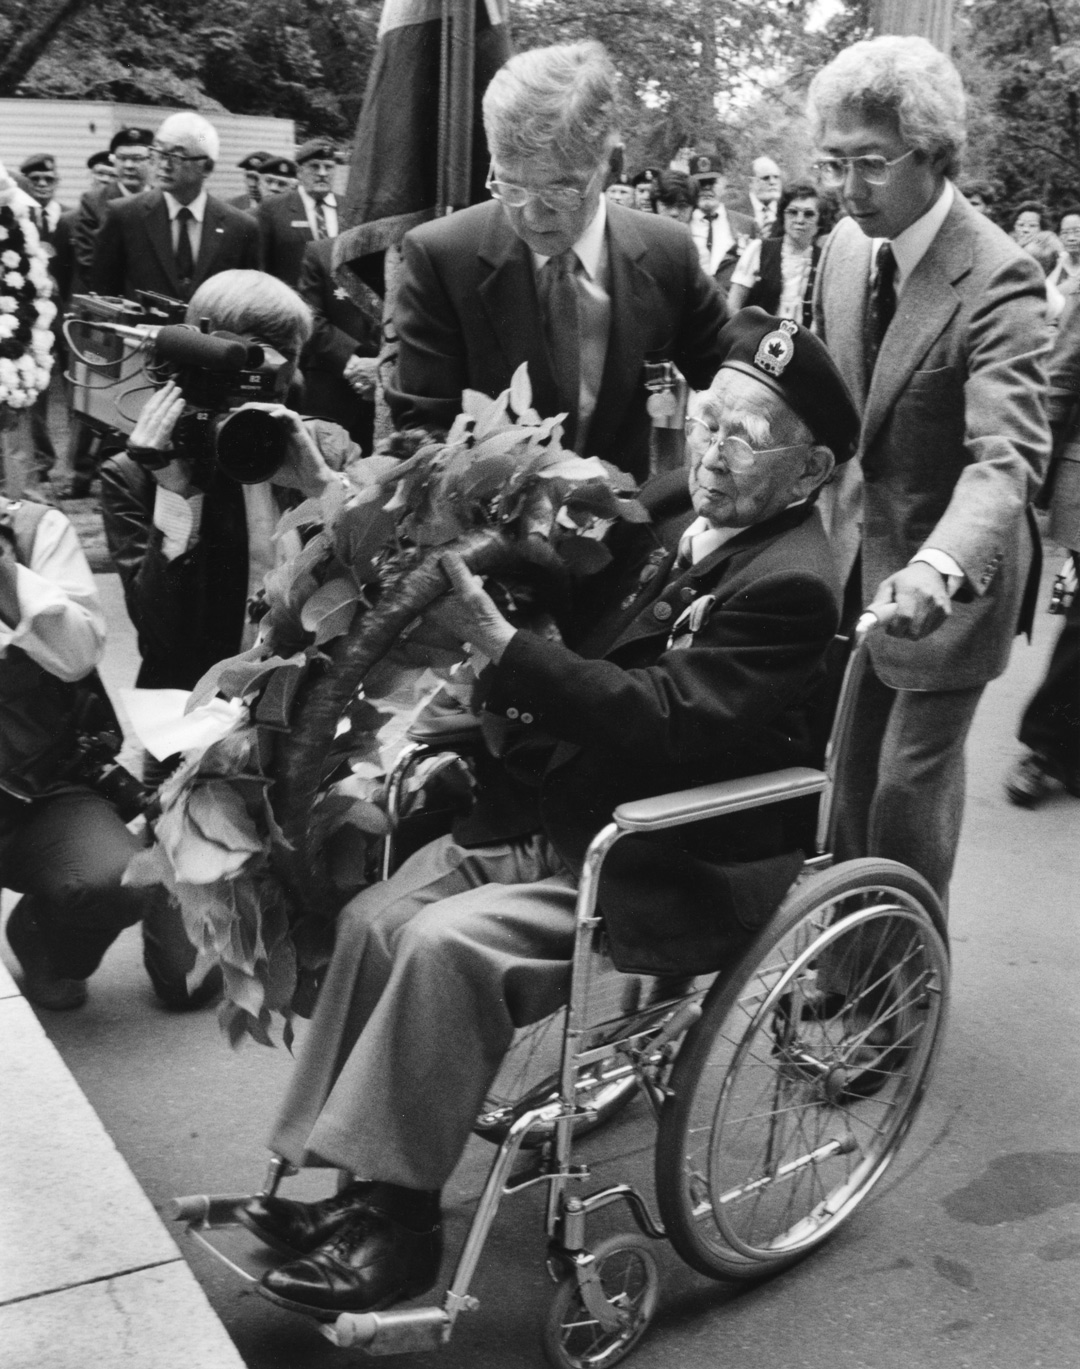 Sergeant Mitsui (seated, in wheelchair) placing a wreath at the Japanese Canadian War Memorial in Stanley Park, 1985. NNM 1992.23